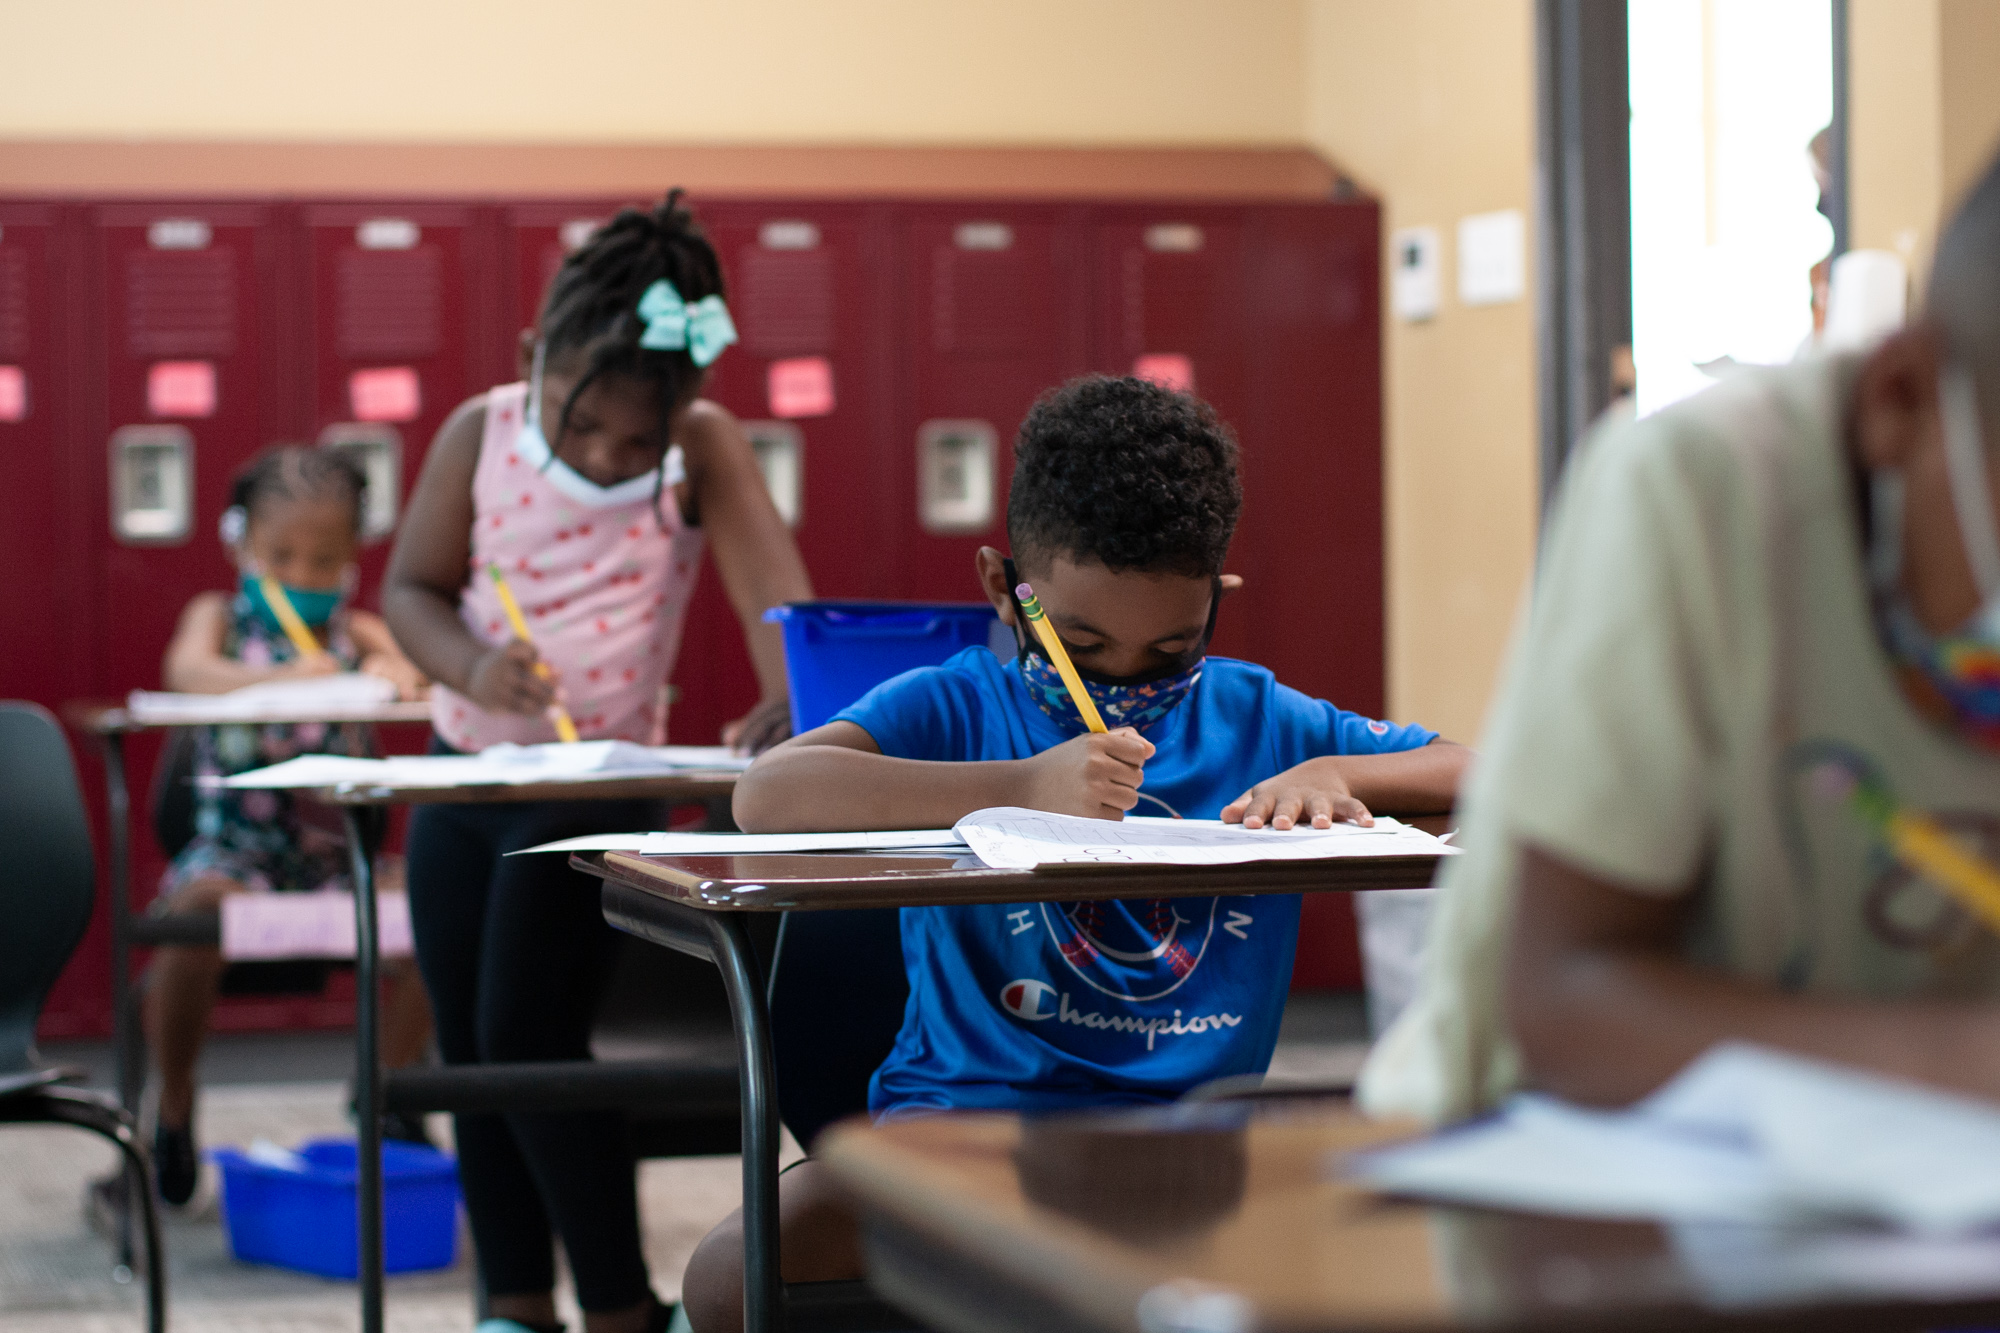 Four students sit in a row of desks in a classroom lined with red lockers. One boy wears a blue shirt and blue mask while writing on a worksheet